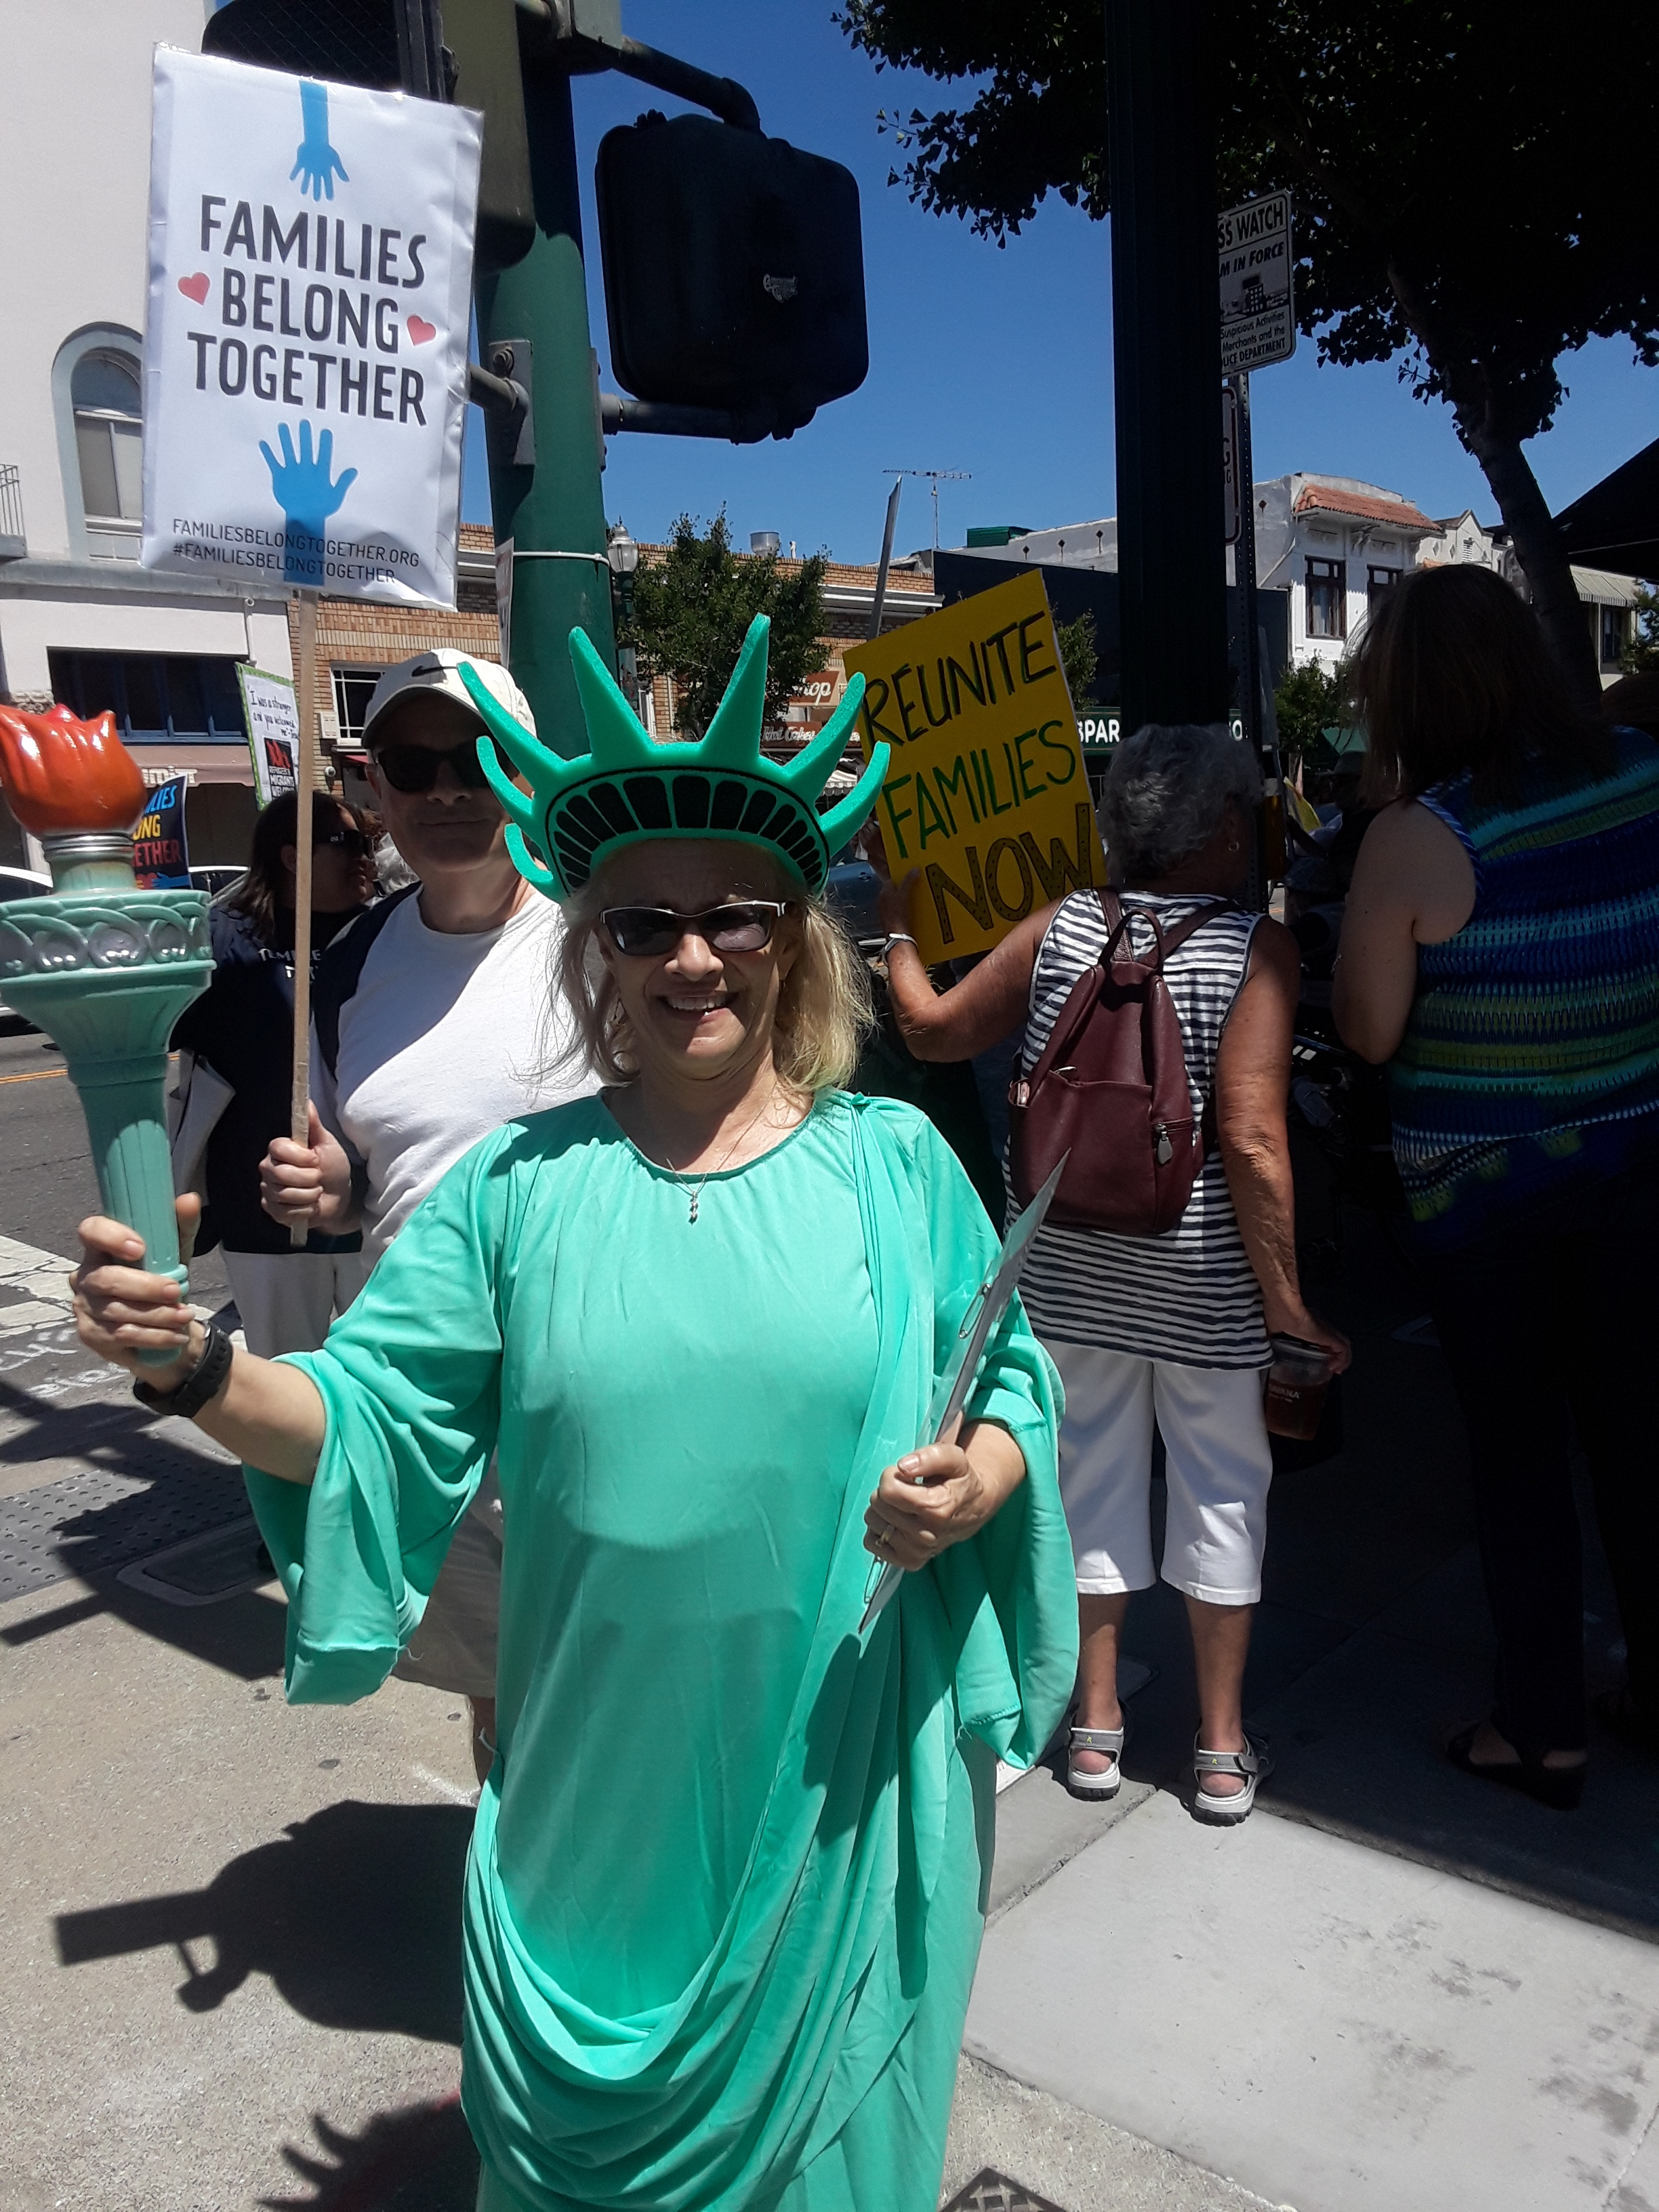 Lady Liberty herself attended the event to show support for separated families